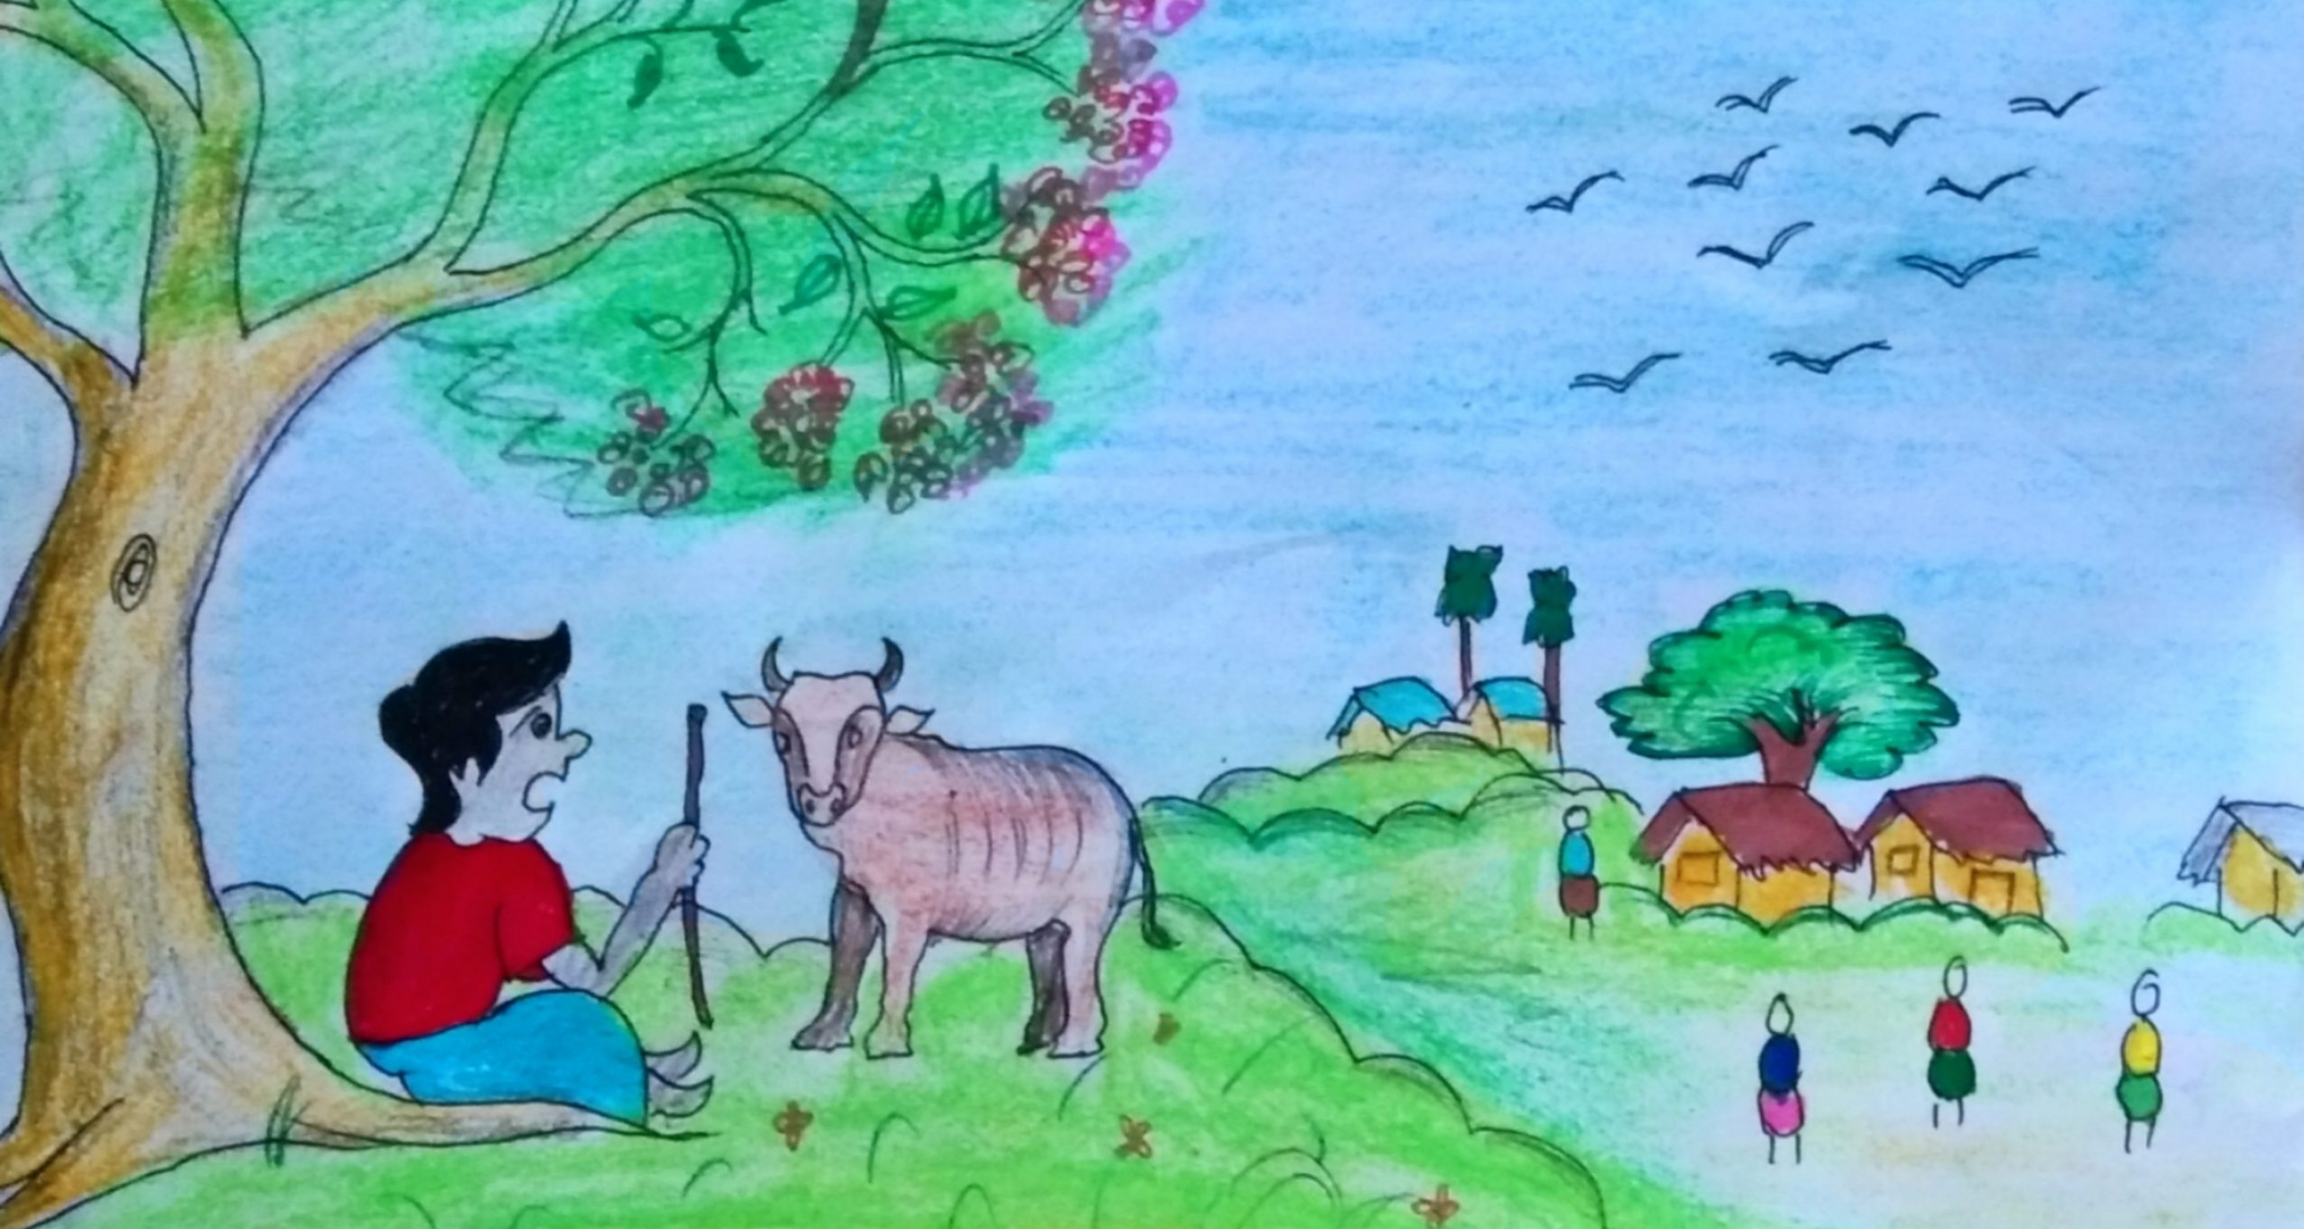 A drawing of a village scene with a person wearing a red shirt and a pig.